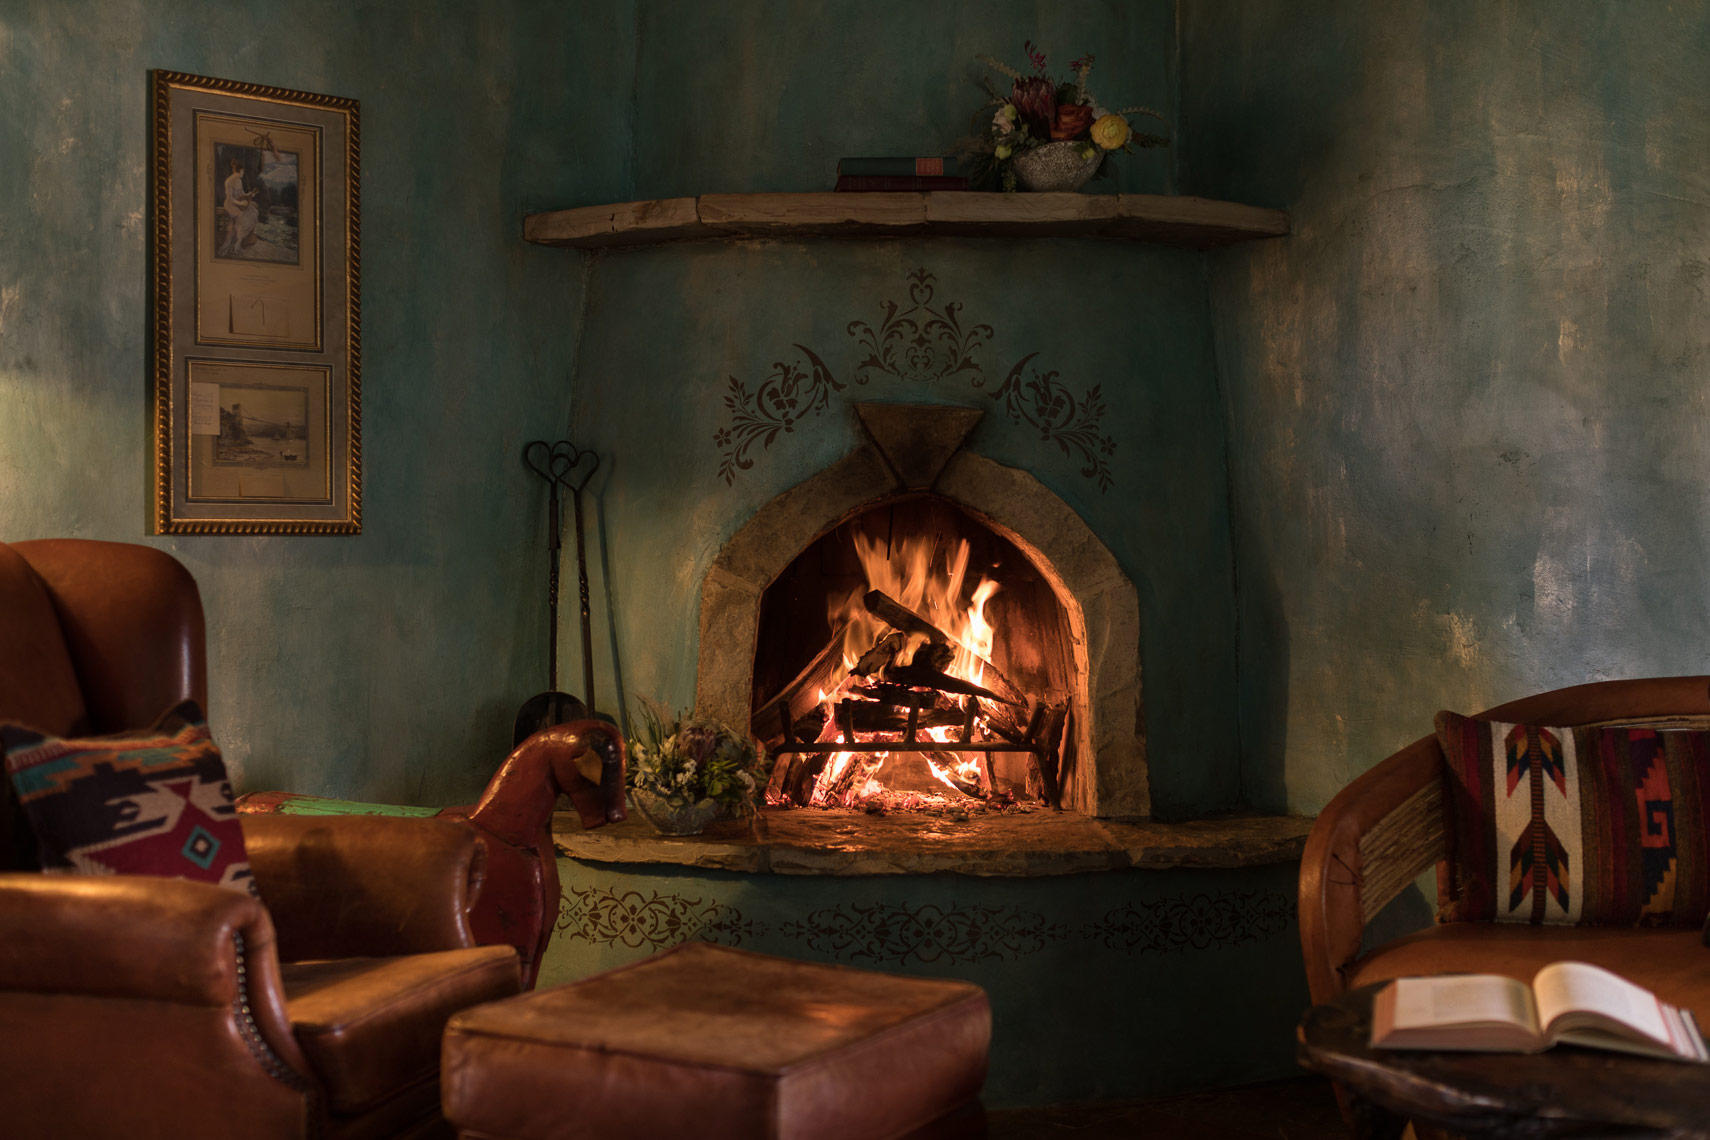 gage-hotel-fireplace-jason-risner-photography-4178